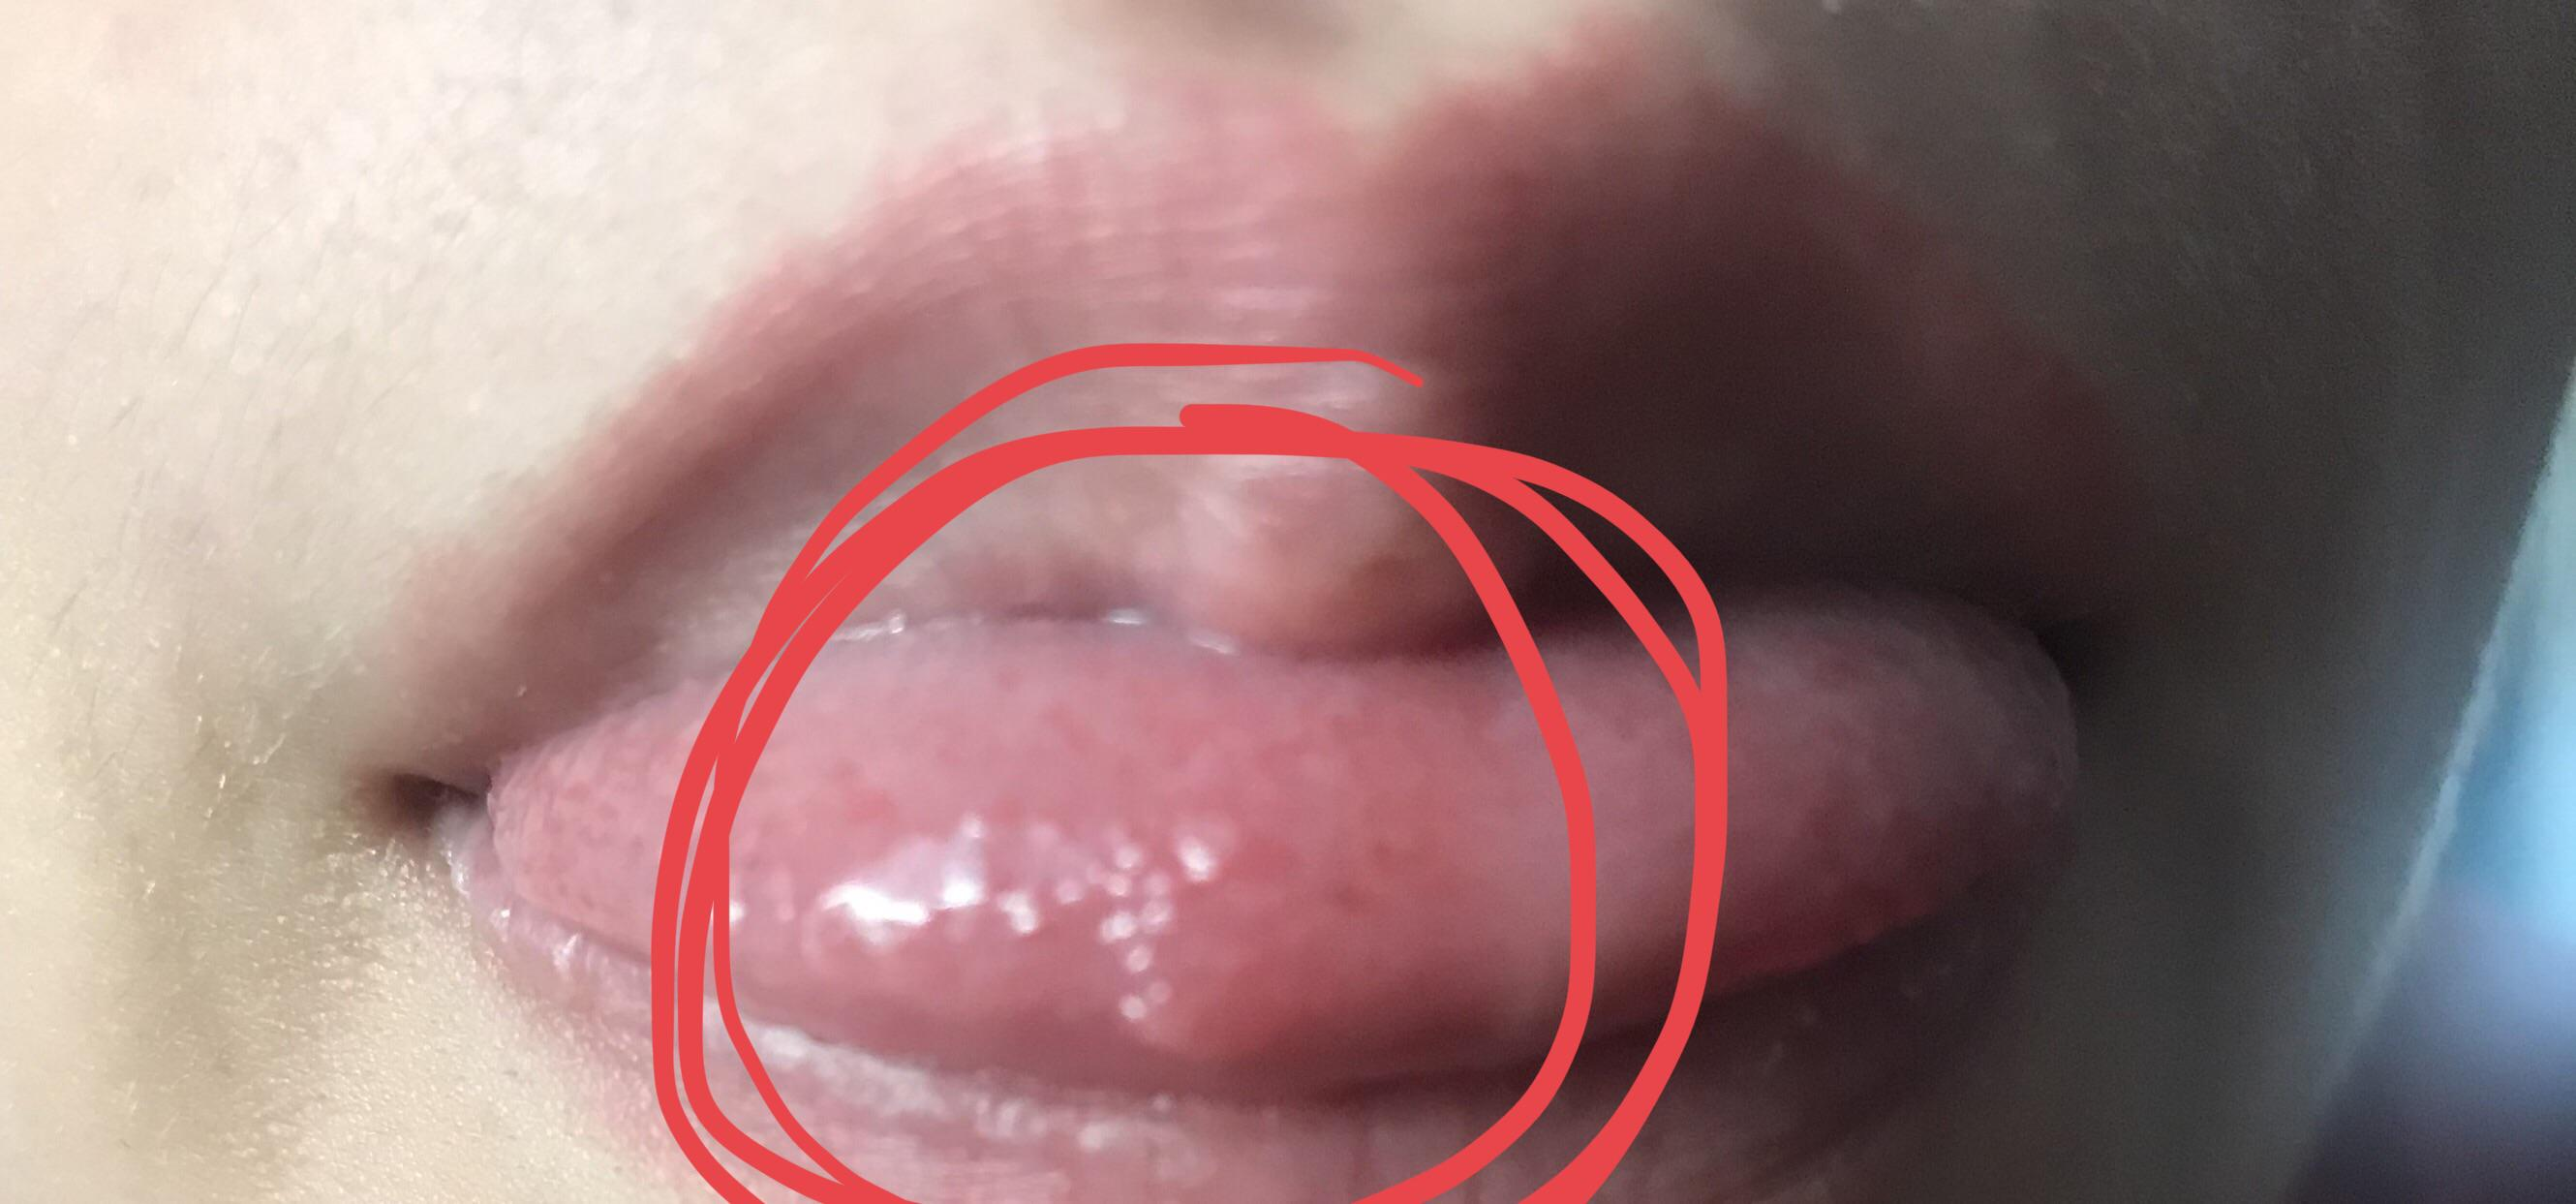 Warts and mouth ulcers, Warts and mouth ulcers